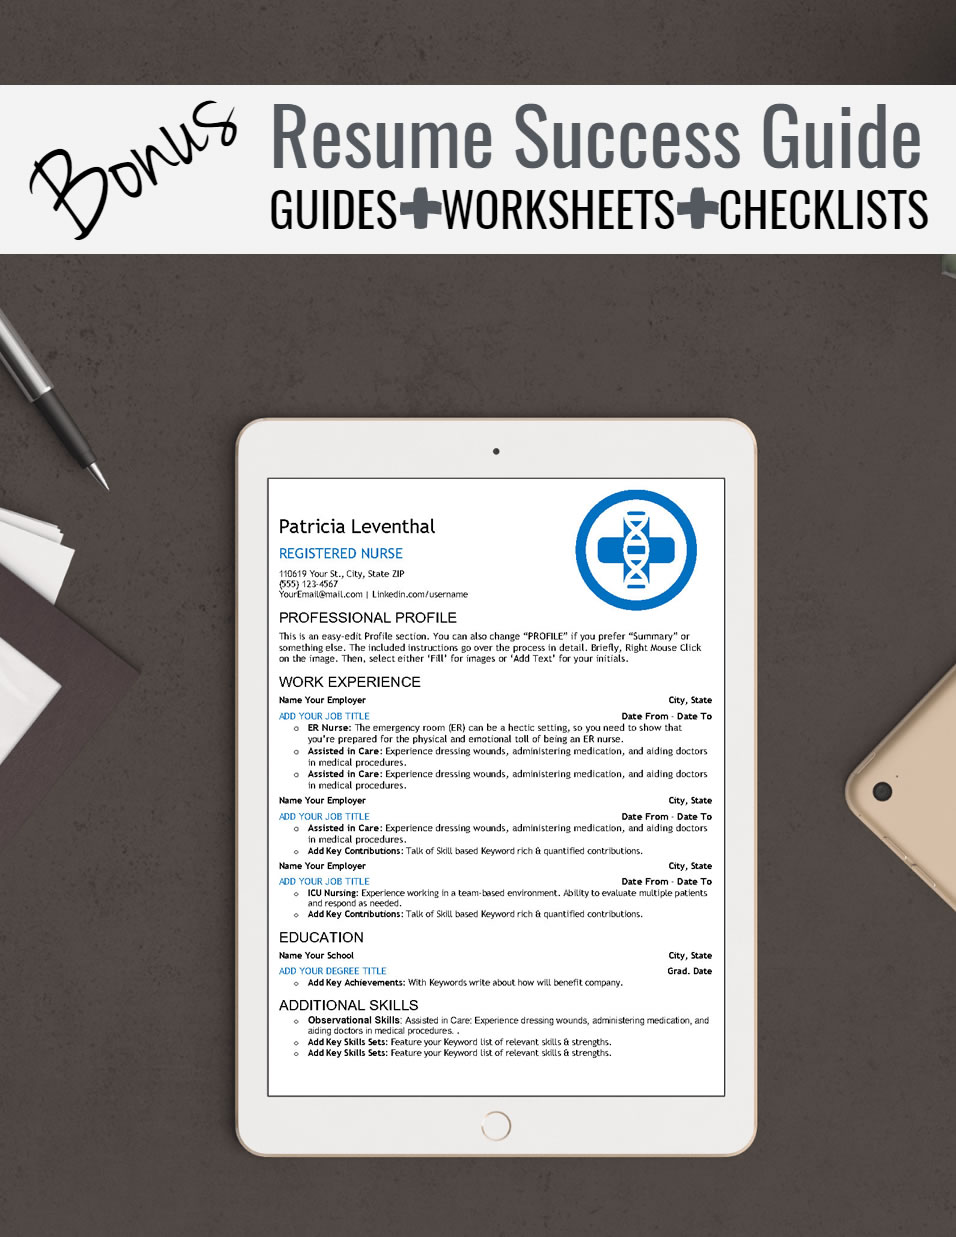 Nursing Essentials - Tablet-Mockup-LONG